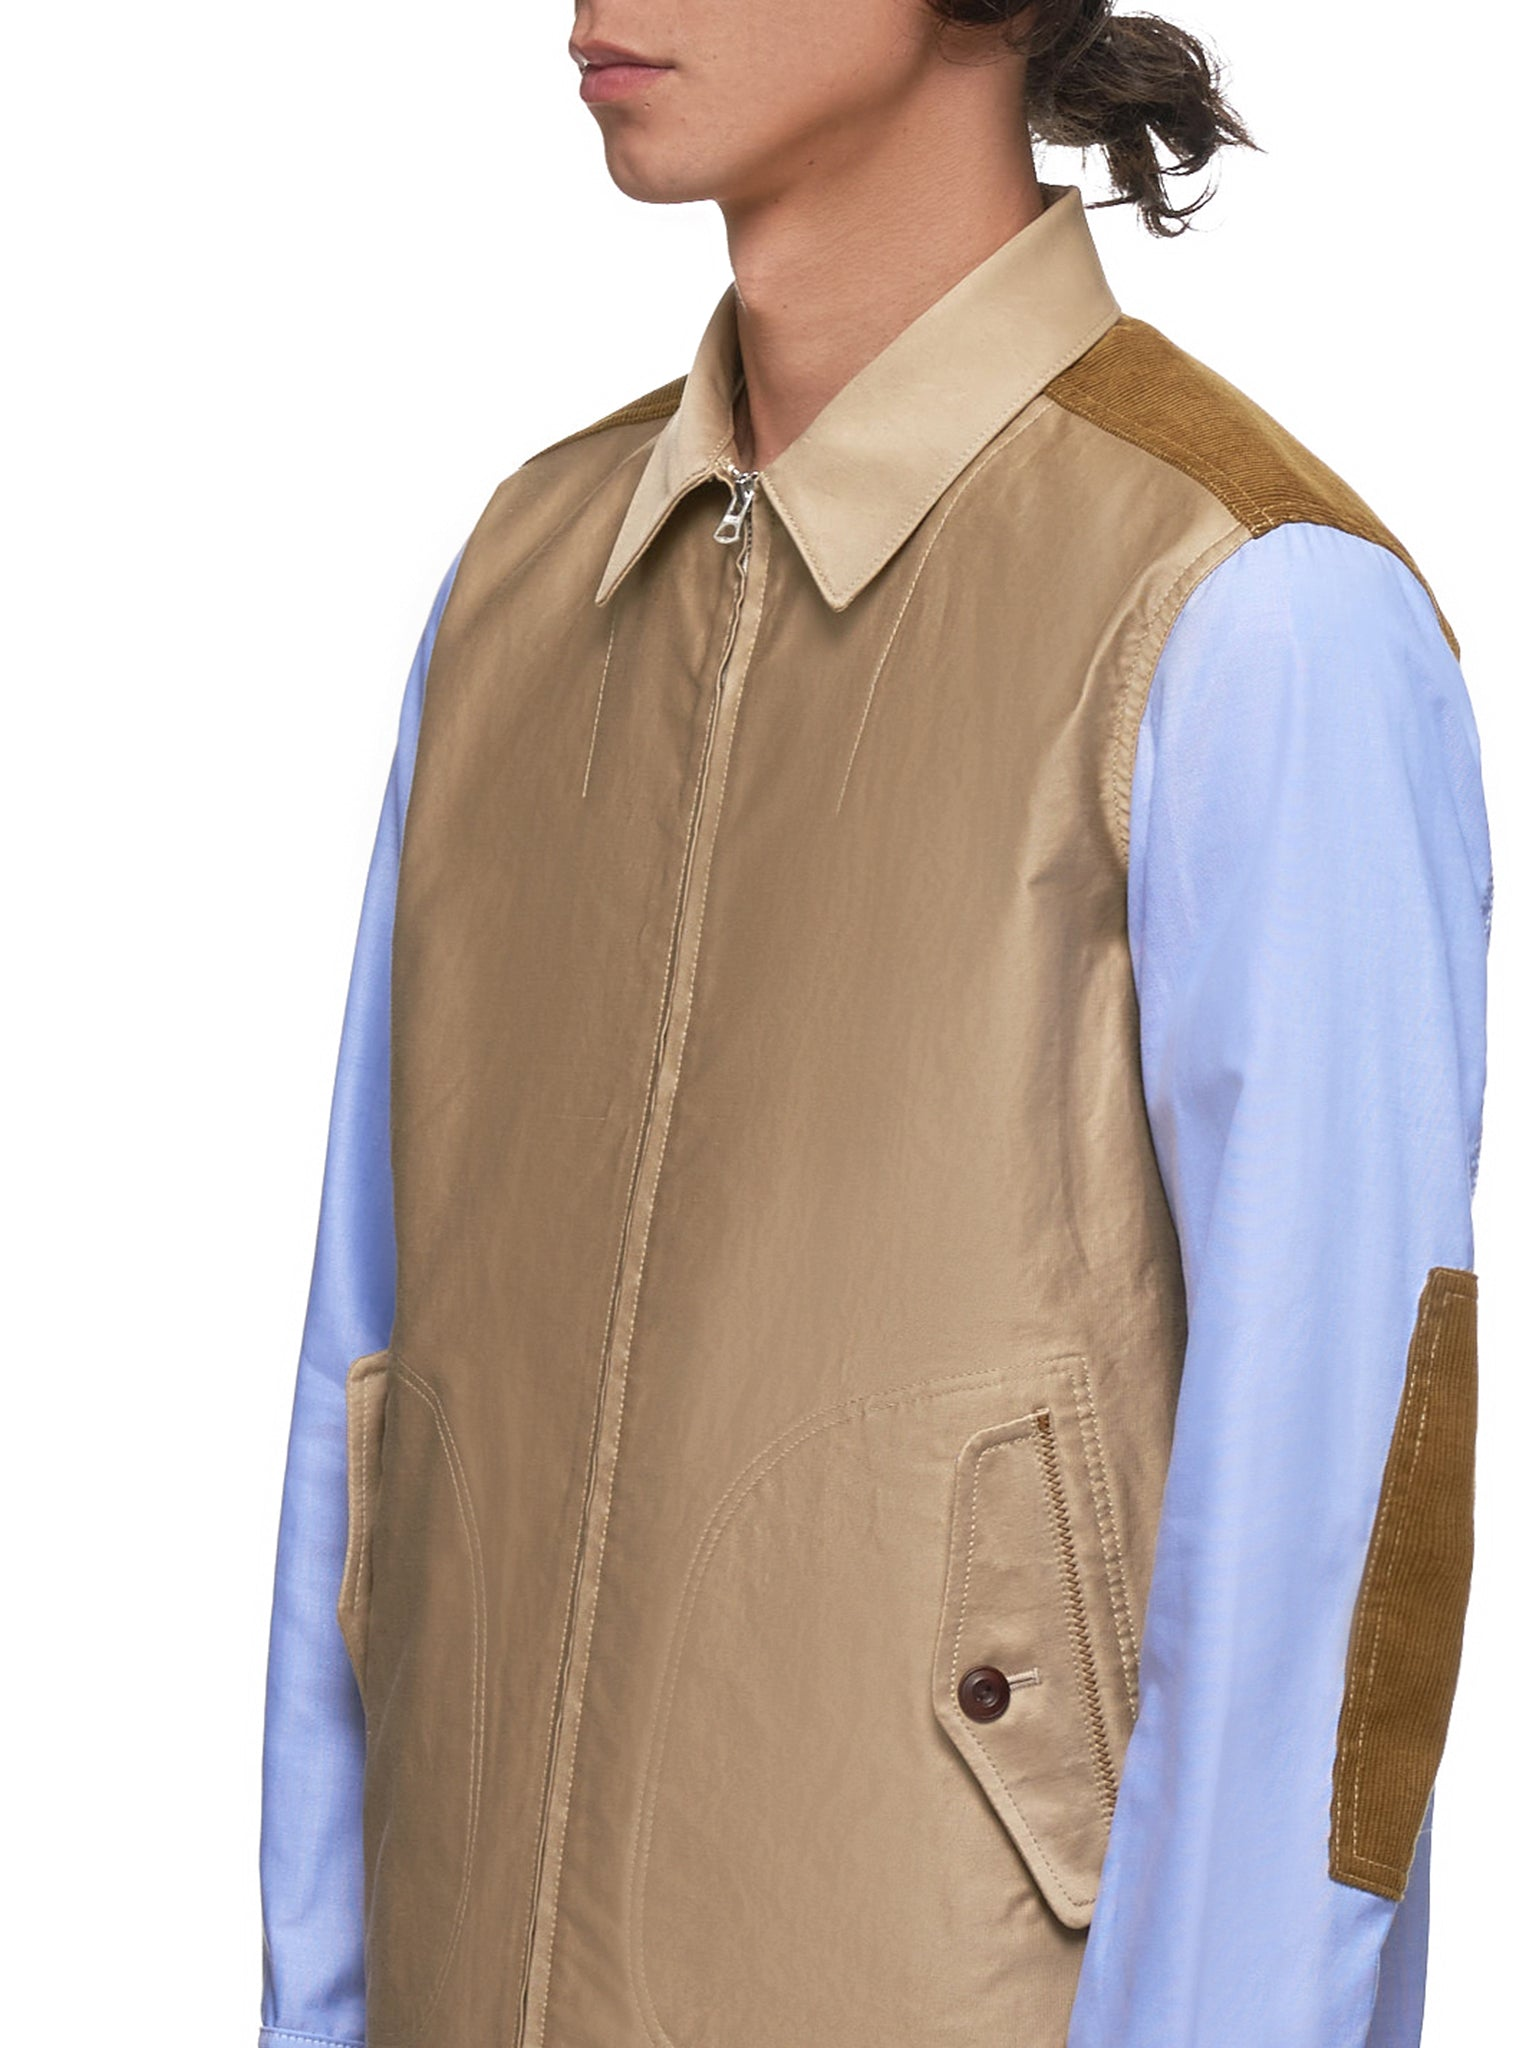 Basic Jacket (WD-B027-051-KHAKI/BLUE)